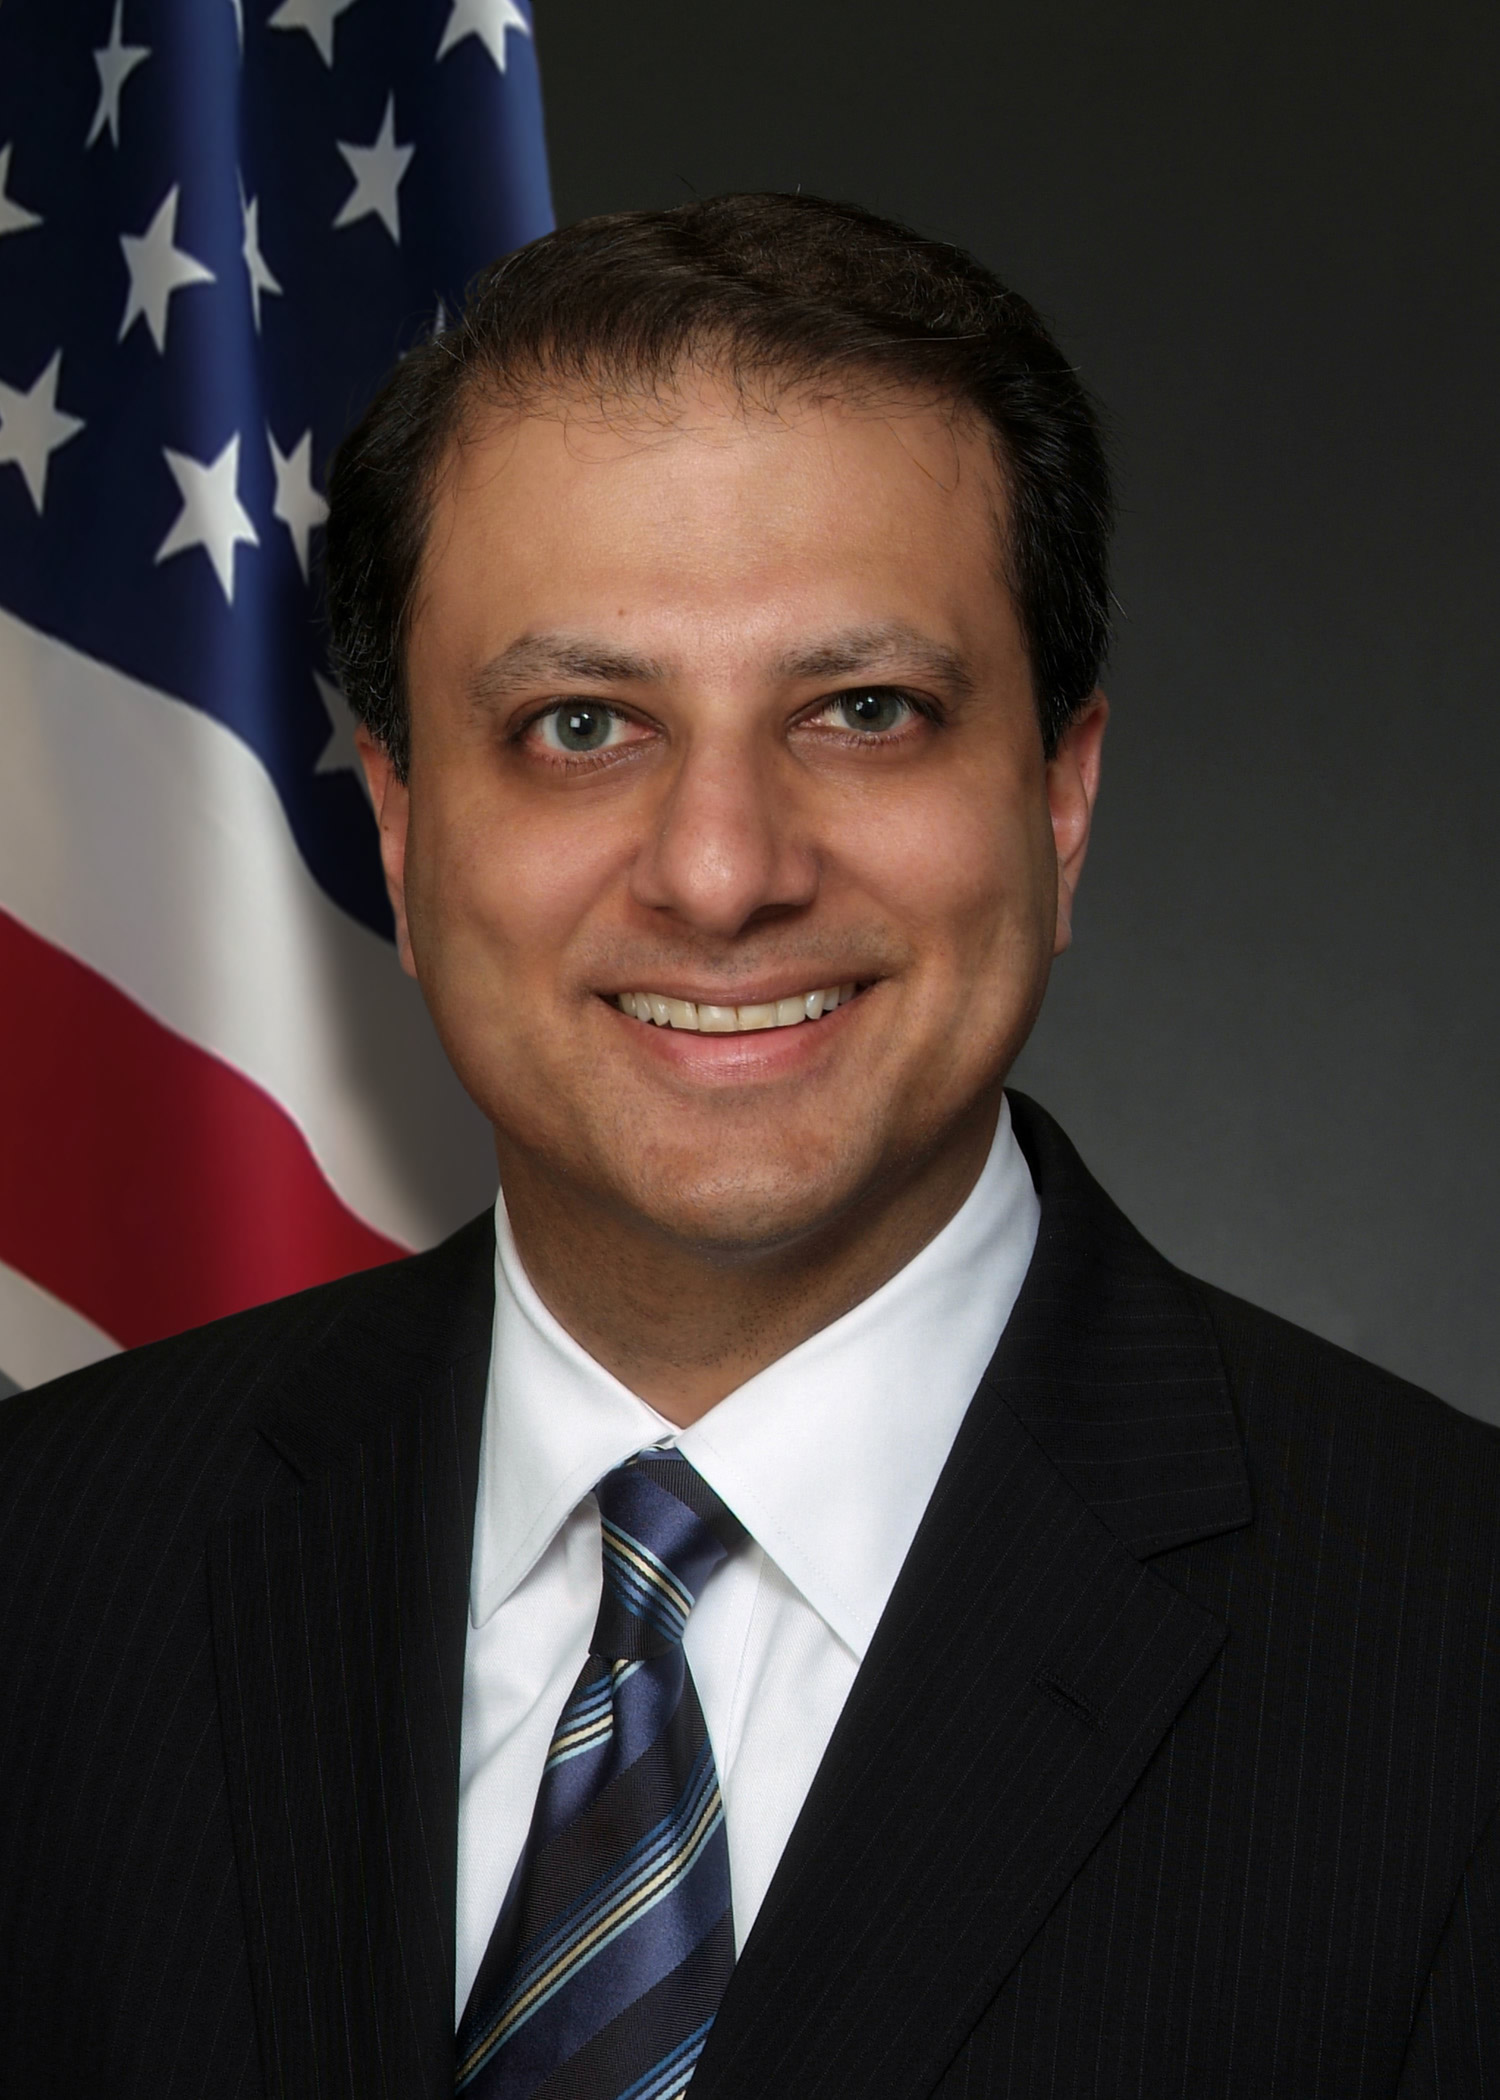 Meet the U.S. Attorney | USAO-SDNY | Department of Justice